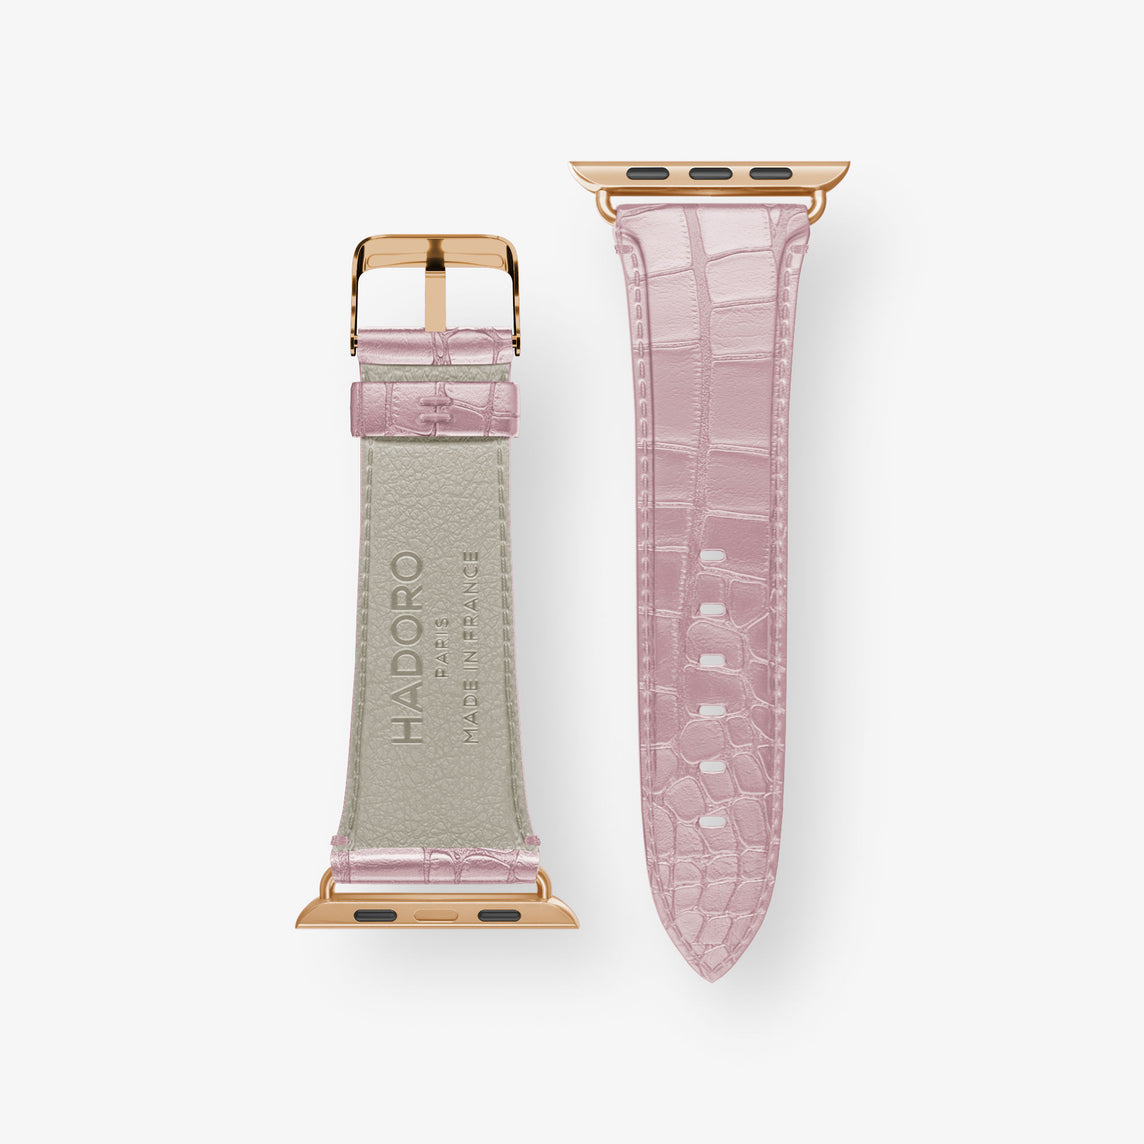 Alligator Watch Straps Apple Watch 38mm | Pink Poudre - Rose Gold